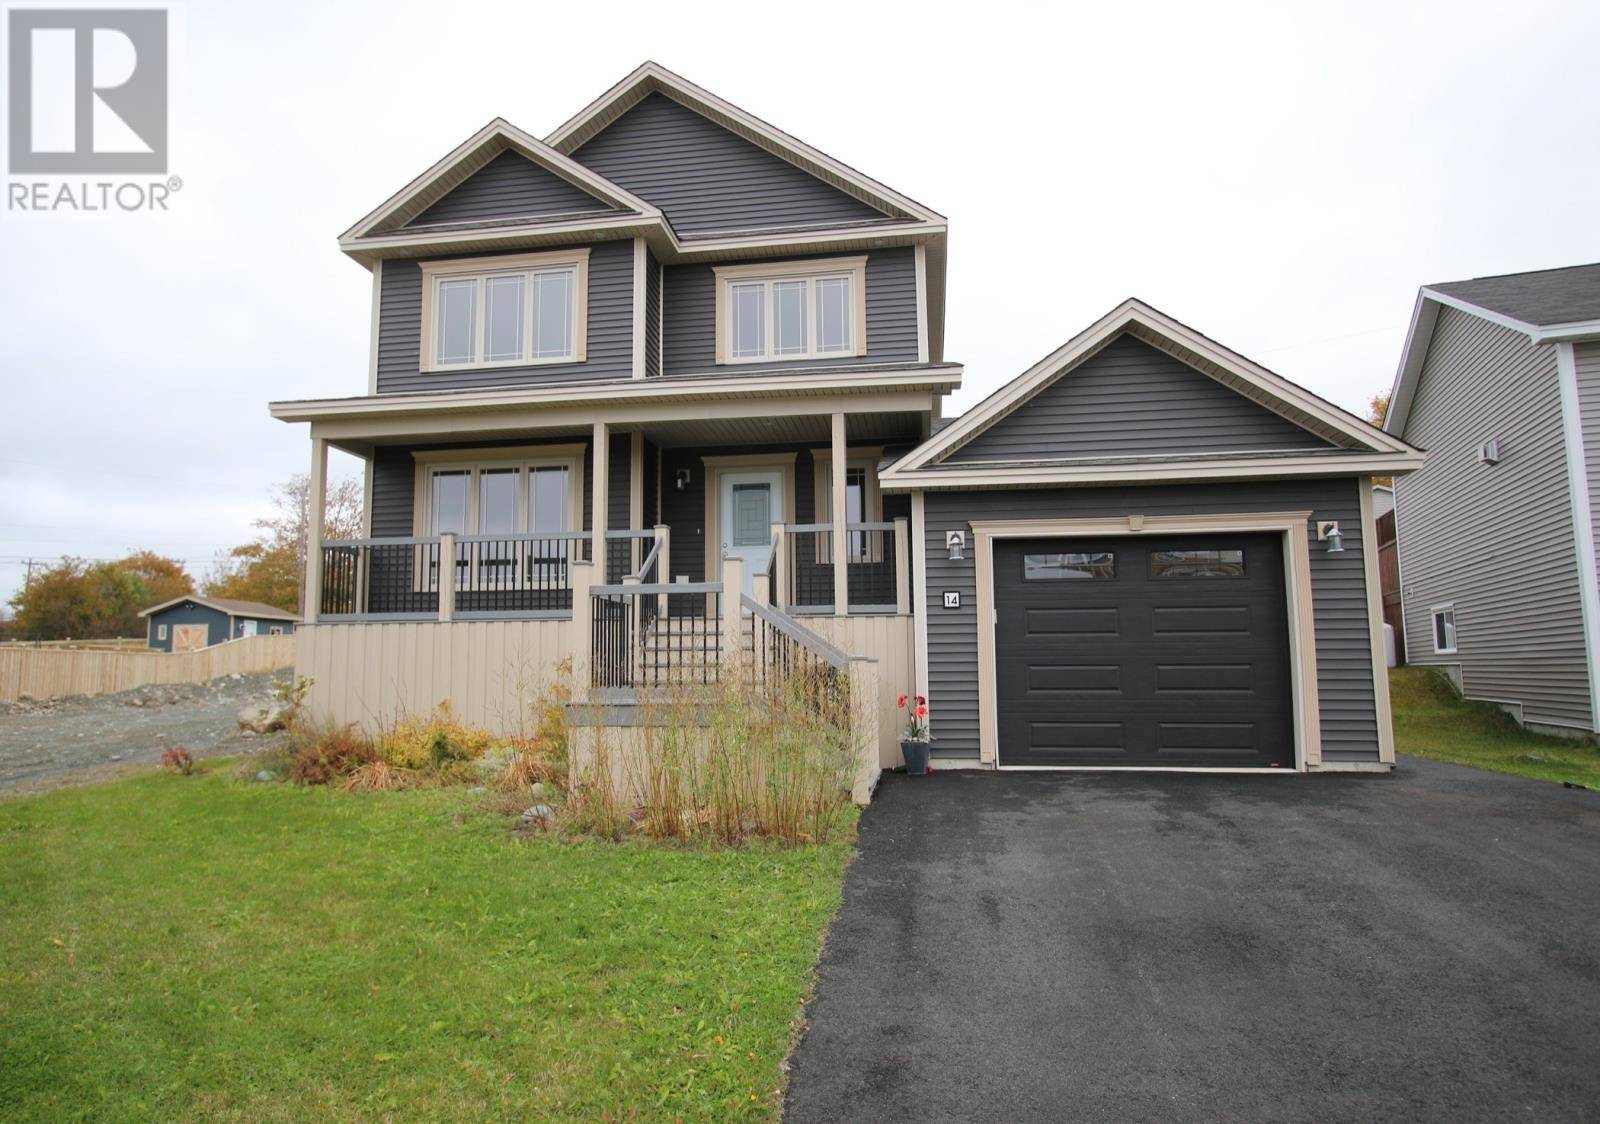 House for sale at 14 Rosegate Pl Conception Bay South Newfoundland - MLS: 1205522